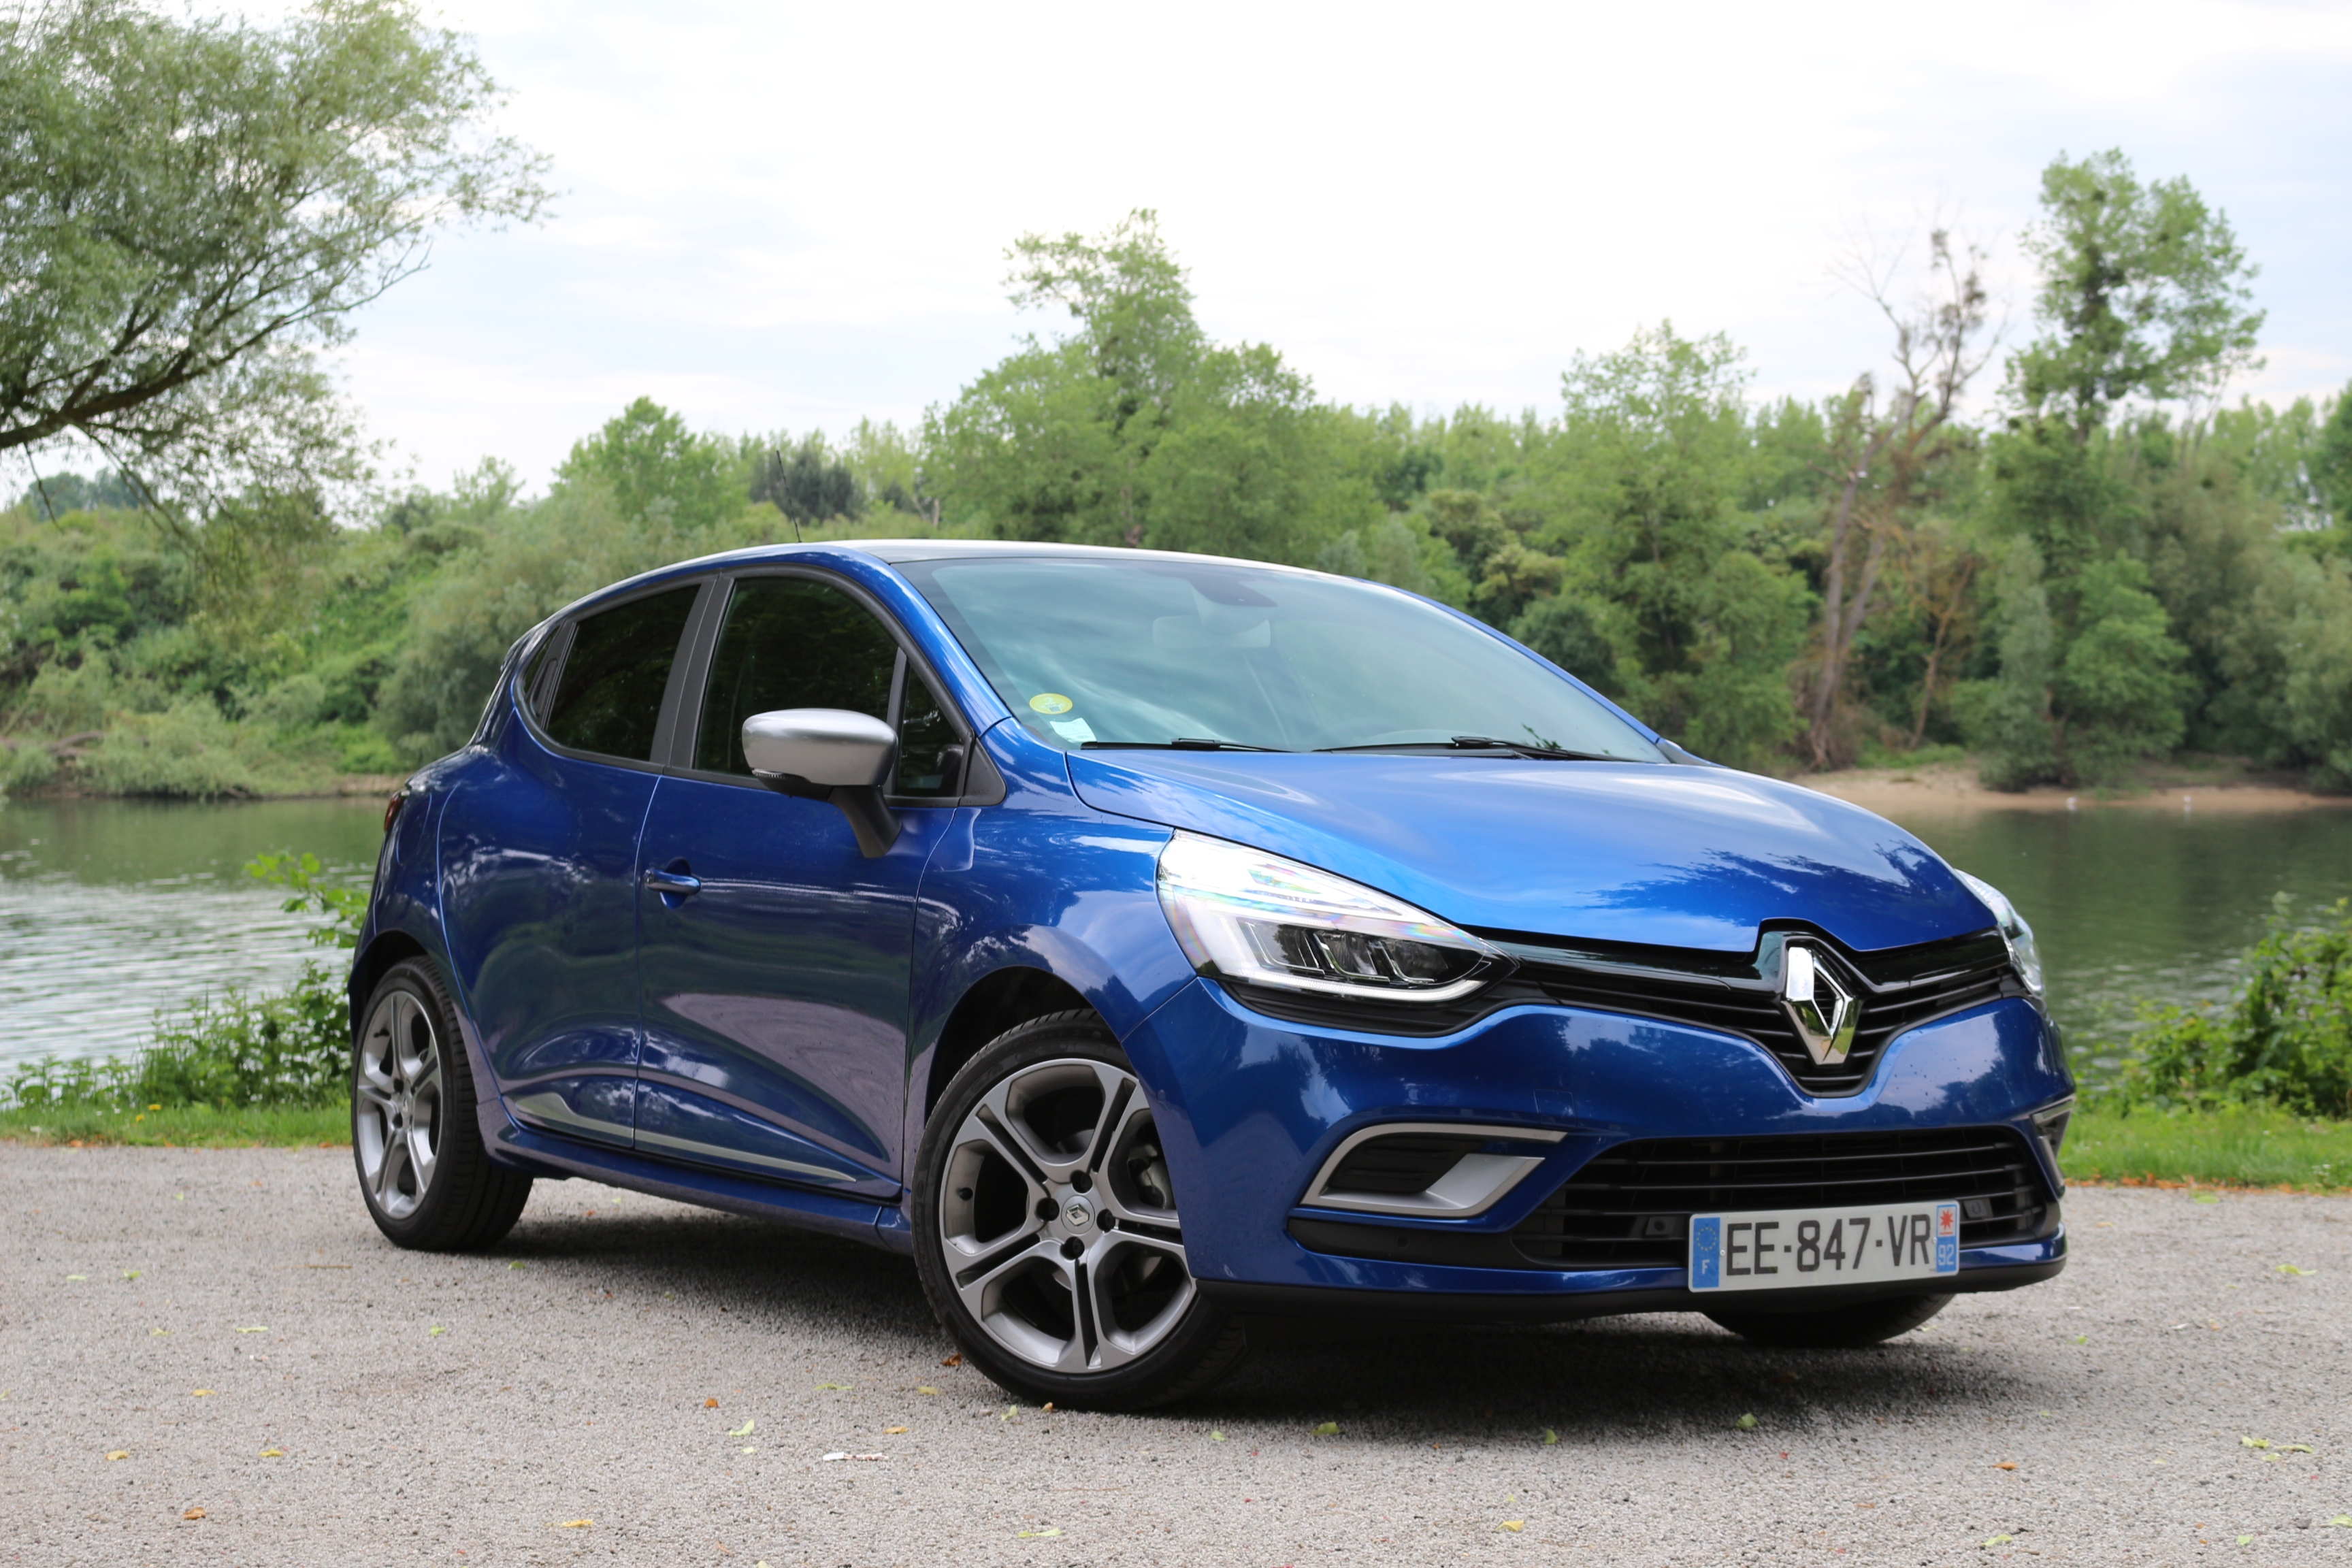 essai renault clio dci 90 gt line 2017 une star en jogging. Black Bedroom Furniture Sets. Home Design Ideas